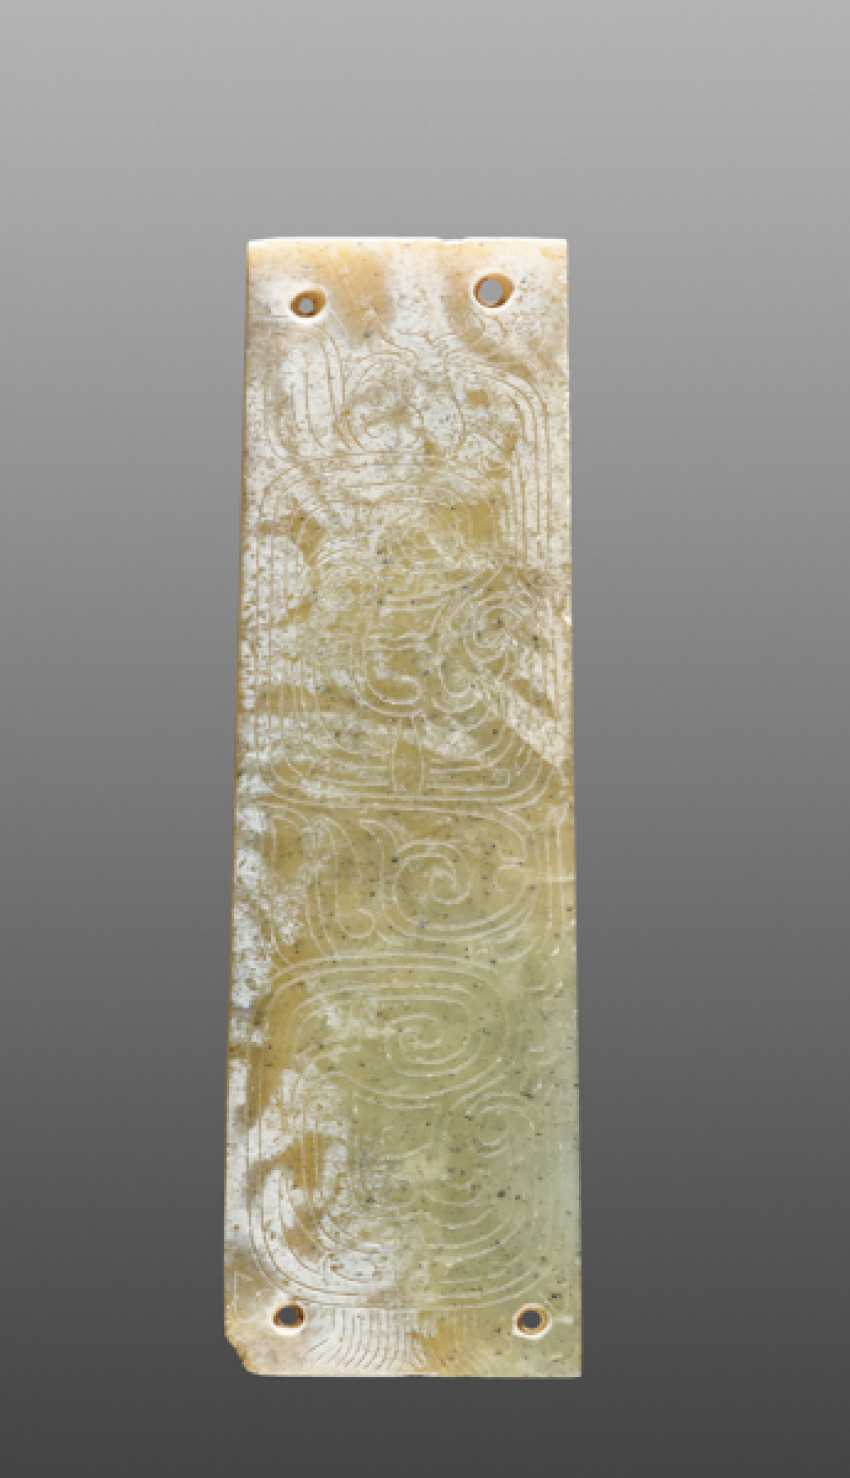 A DELICATELY CARVED TINY PLAQUE IN GREEN JADE WITH TWO CRESTED AND LONG-TAILED BIRDS DECORATED ON ONE SIDE - photo 1